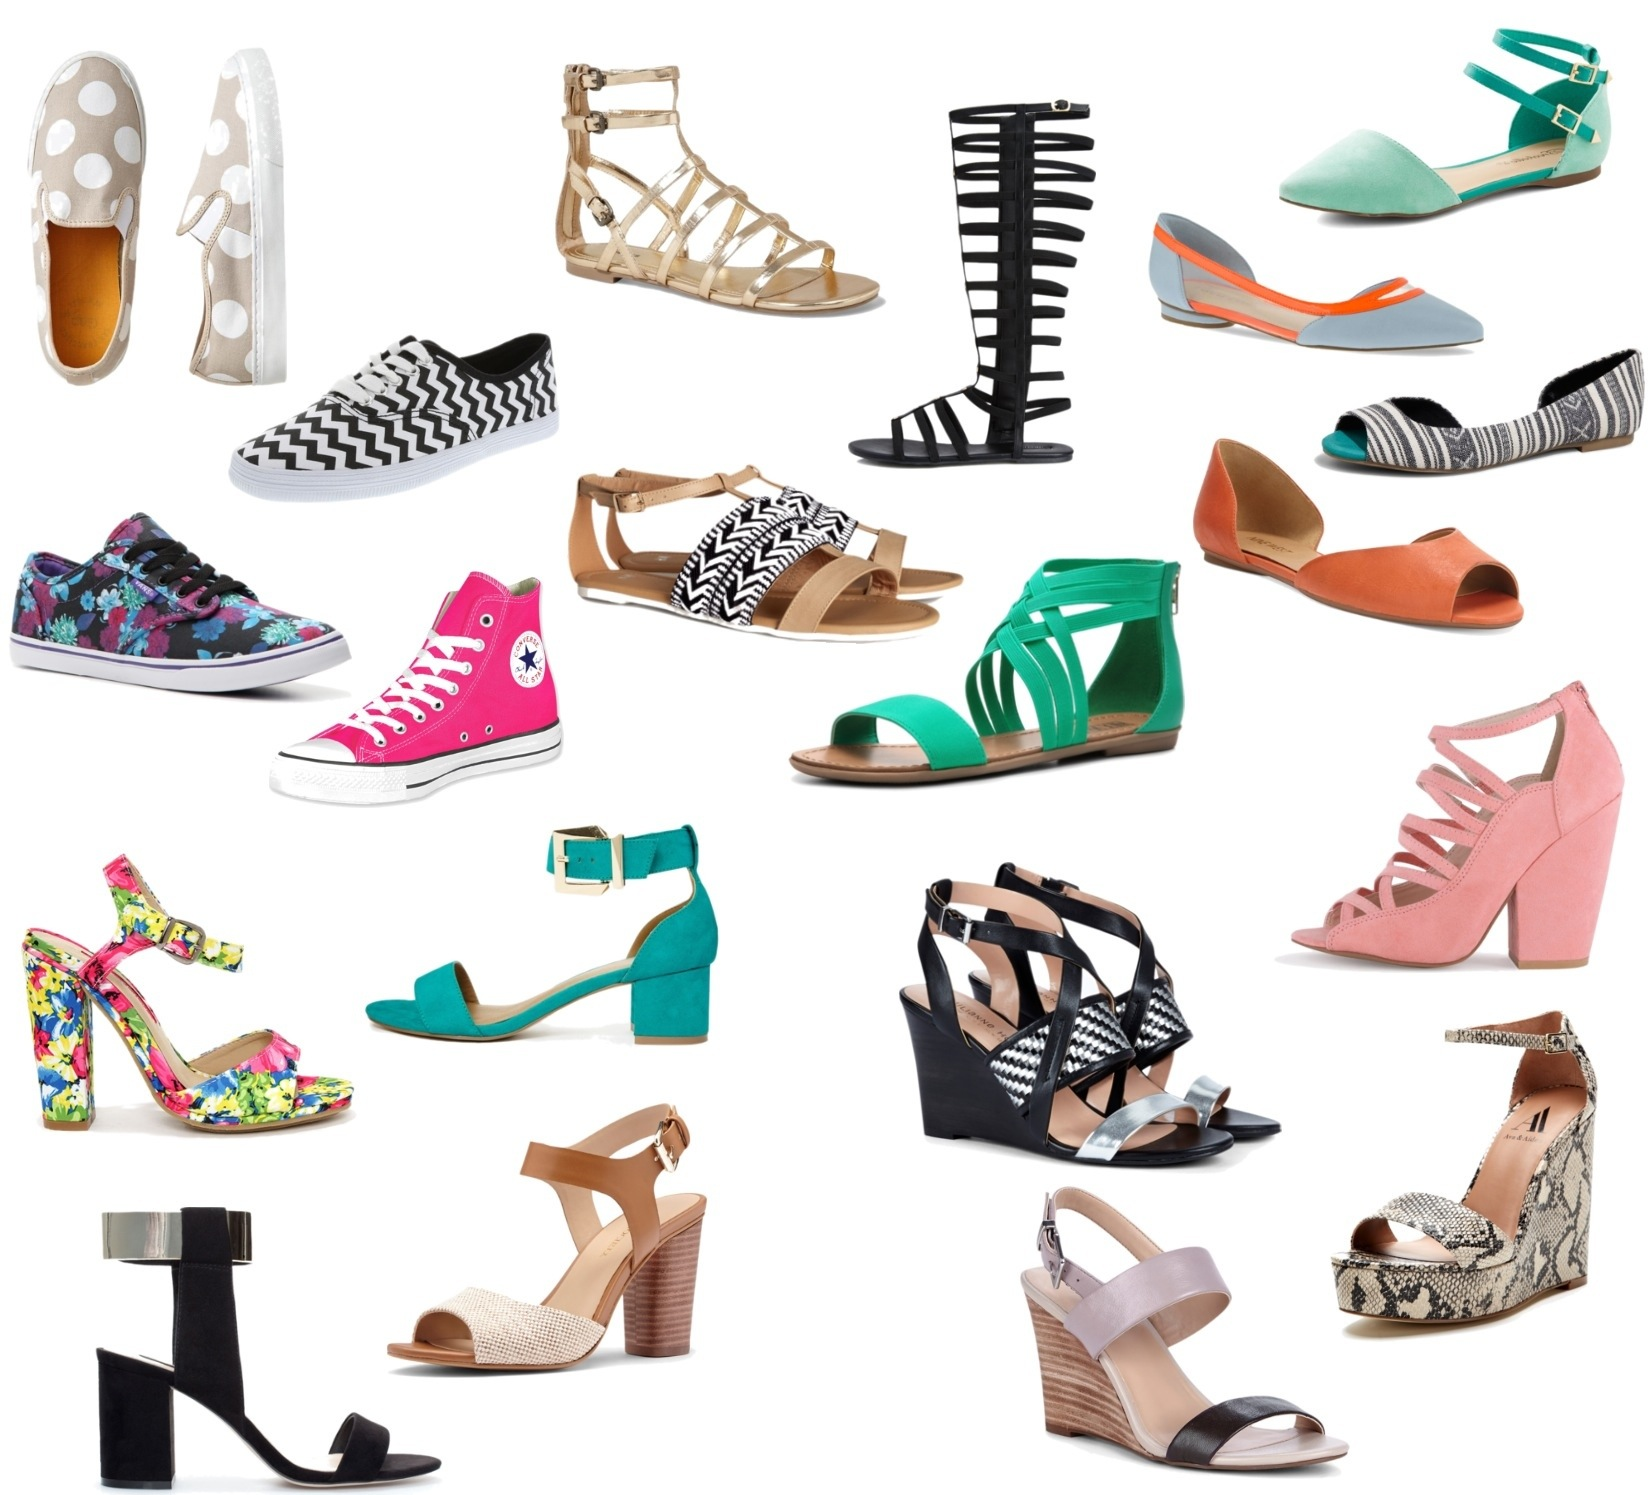 Heels clipart chic Frolick City  City Chic: